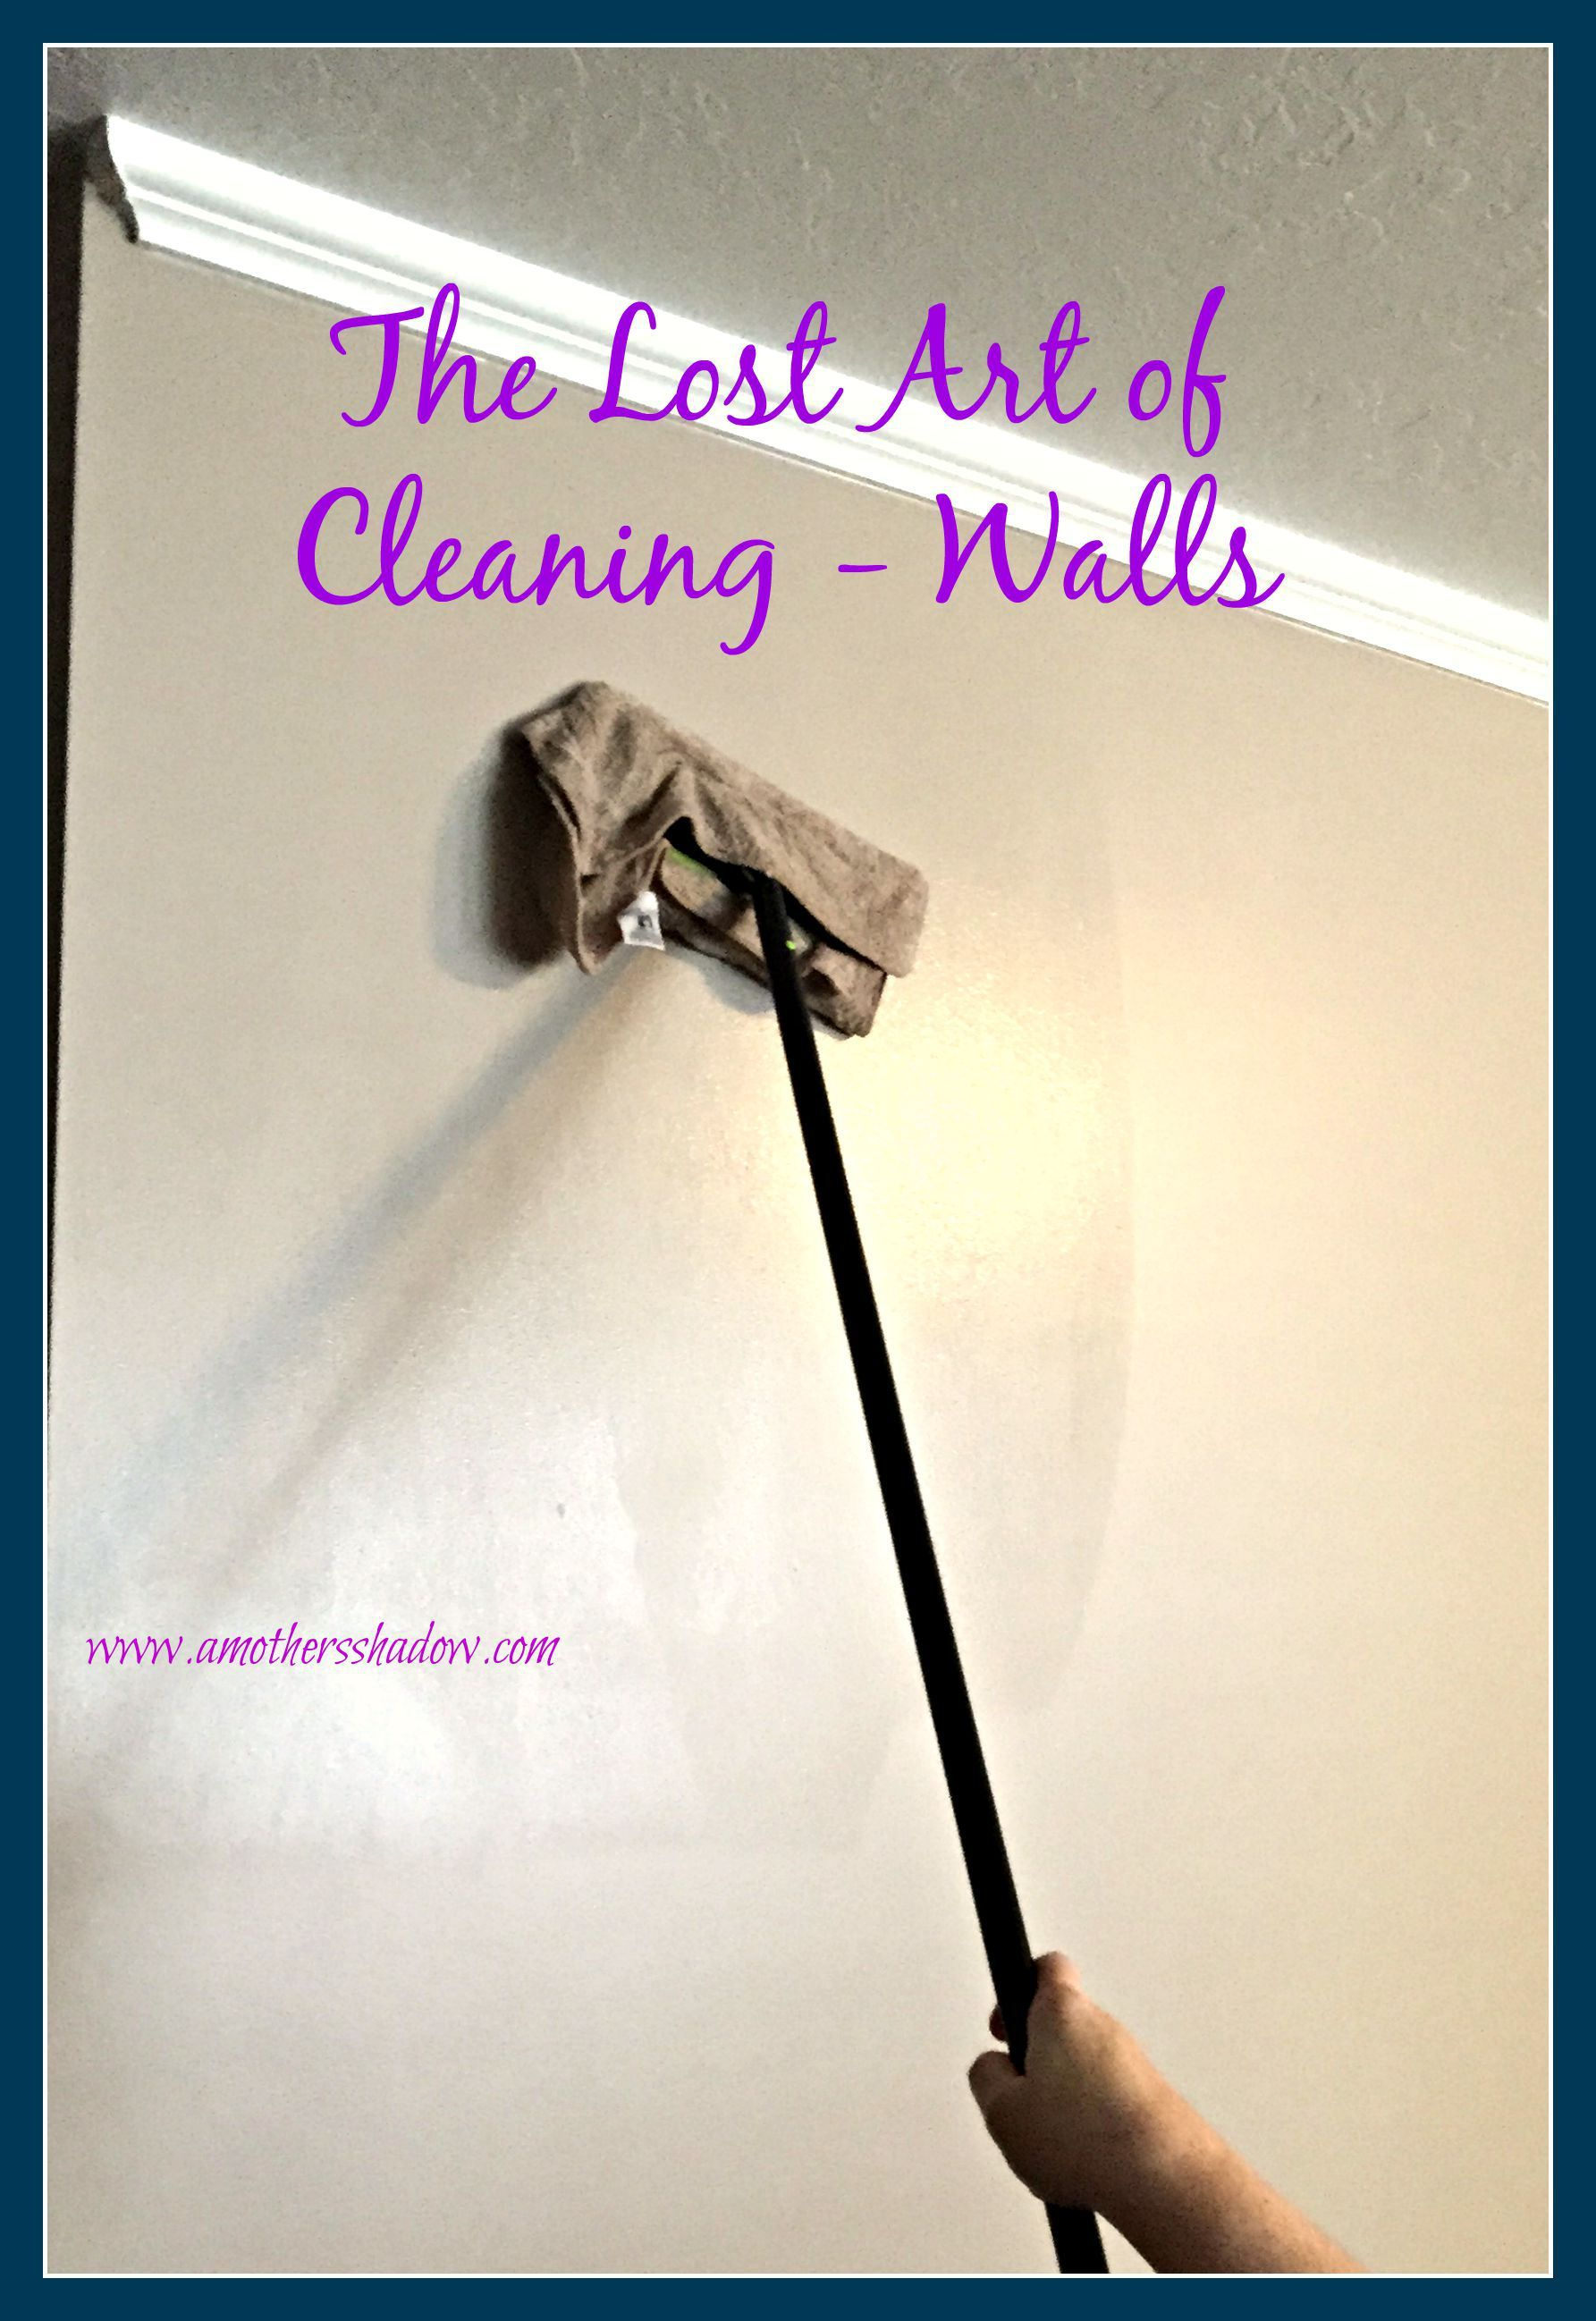 Just another dirt in the wall - The Lost Art Of Cleaning Walls